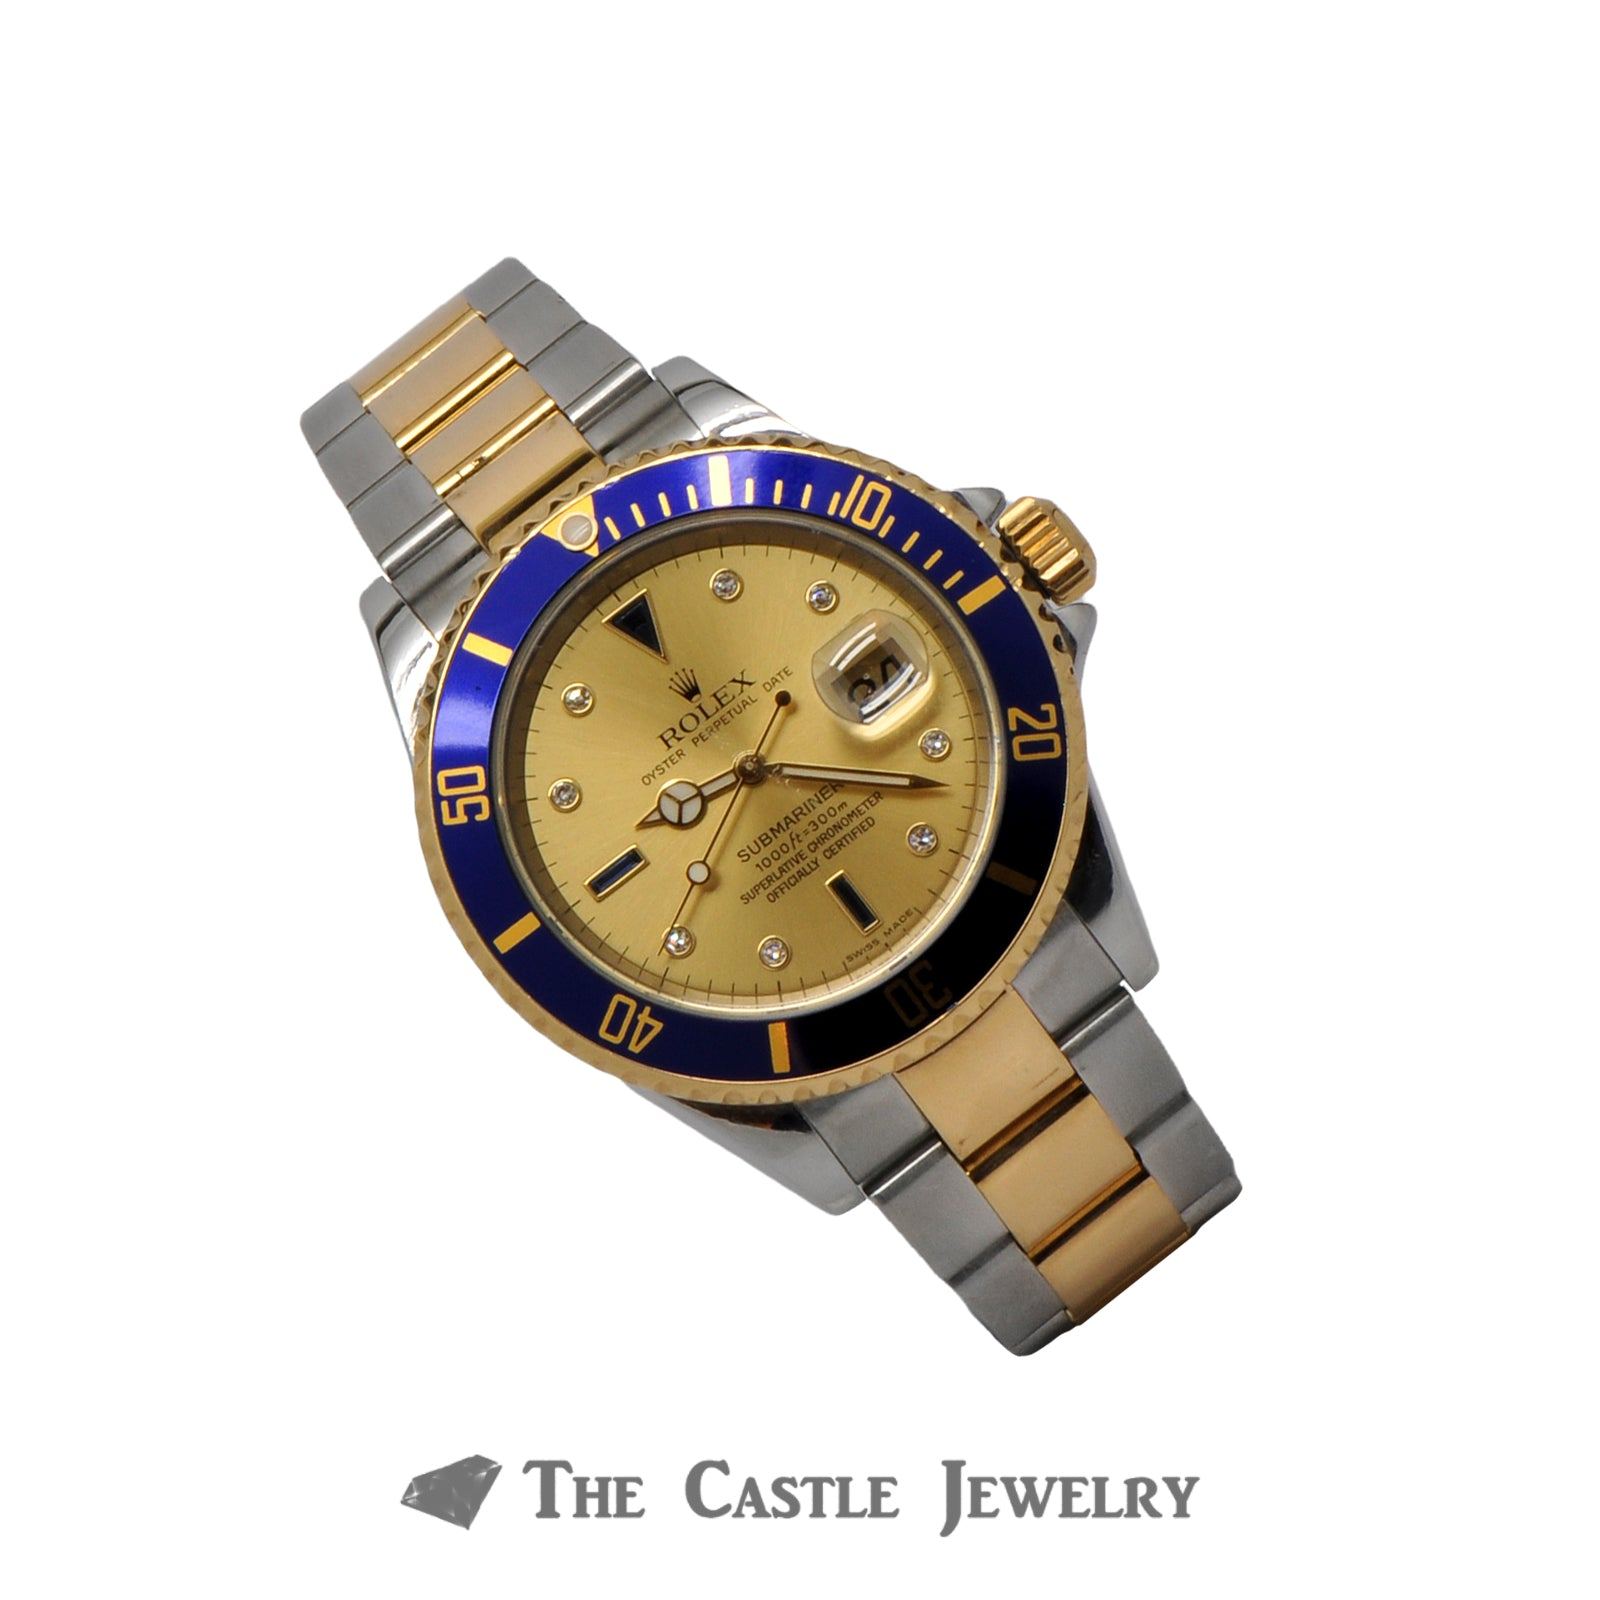 Rolex Submariner 16613 with Factory Serti Dial in Excellent Condition-2